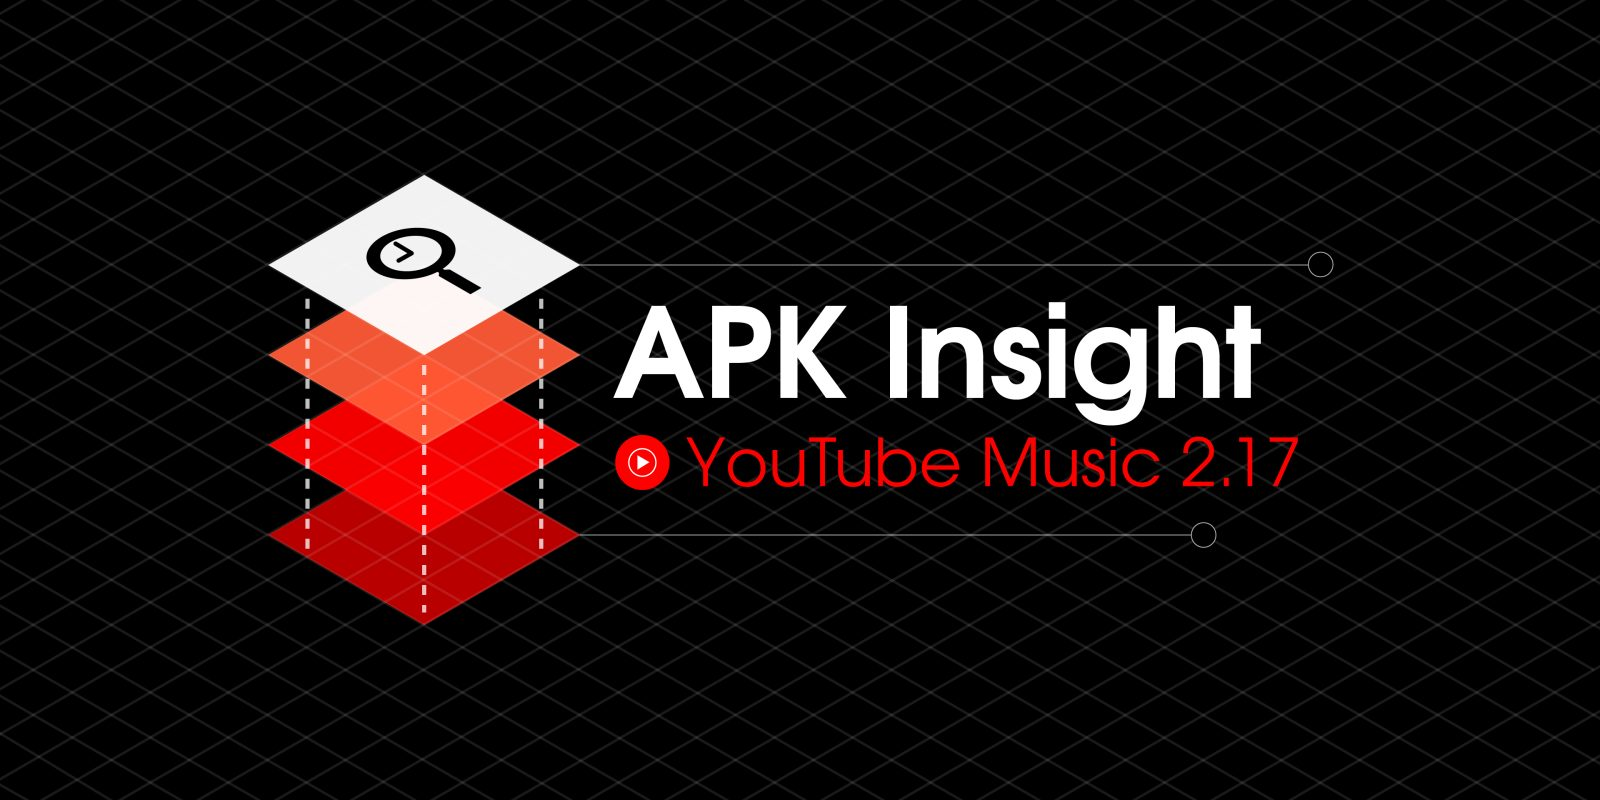 Youtube Music 2 17 Preps Play Music Like Location Based Playlists Auto Downloads Subscriptions More Apk Insight 9to5google